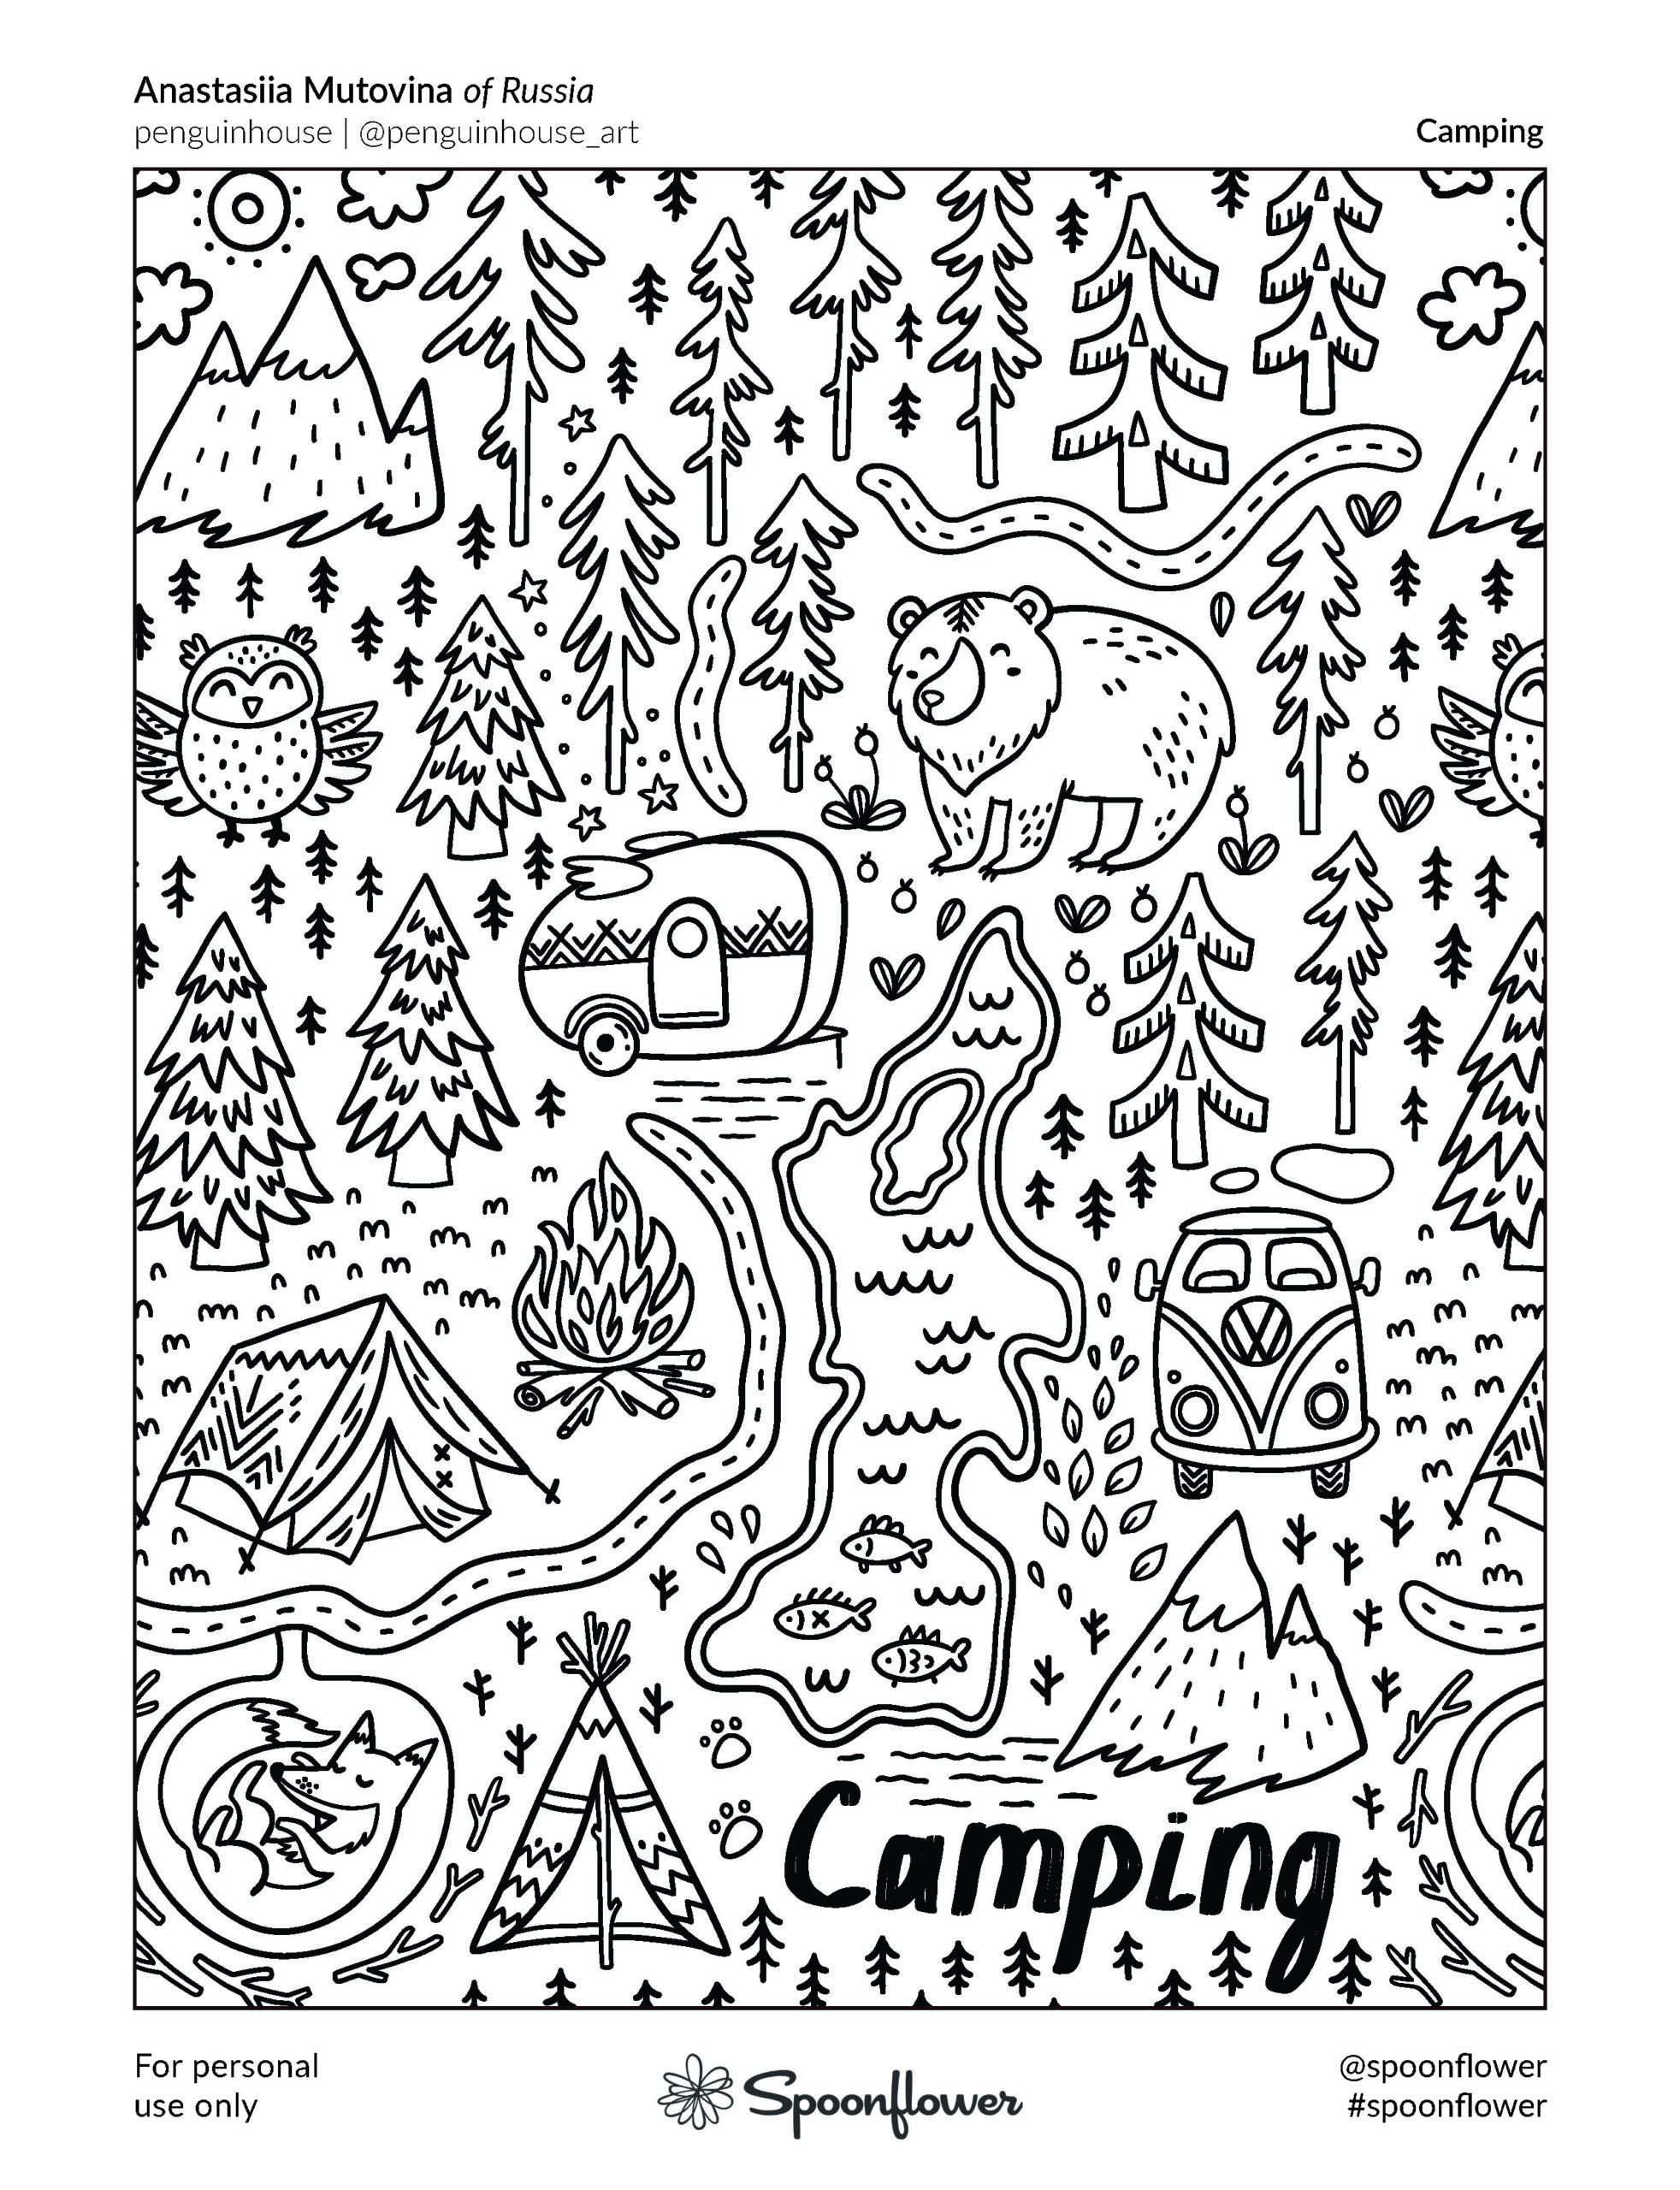 Coloring Book Page - Anastassia Mutovina